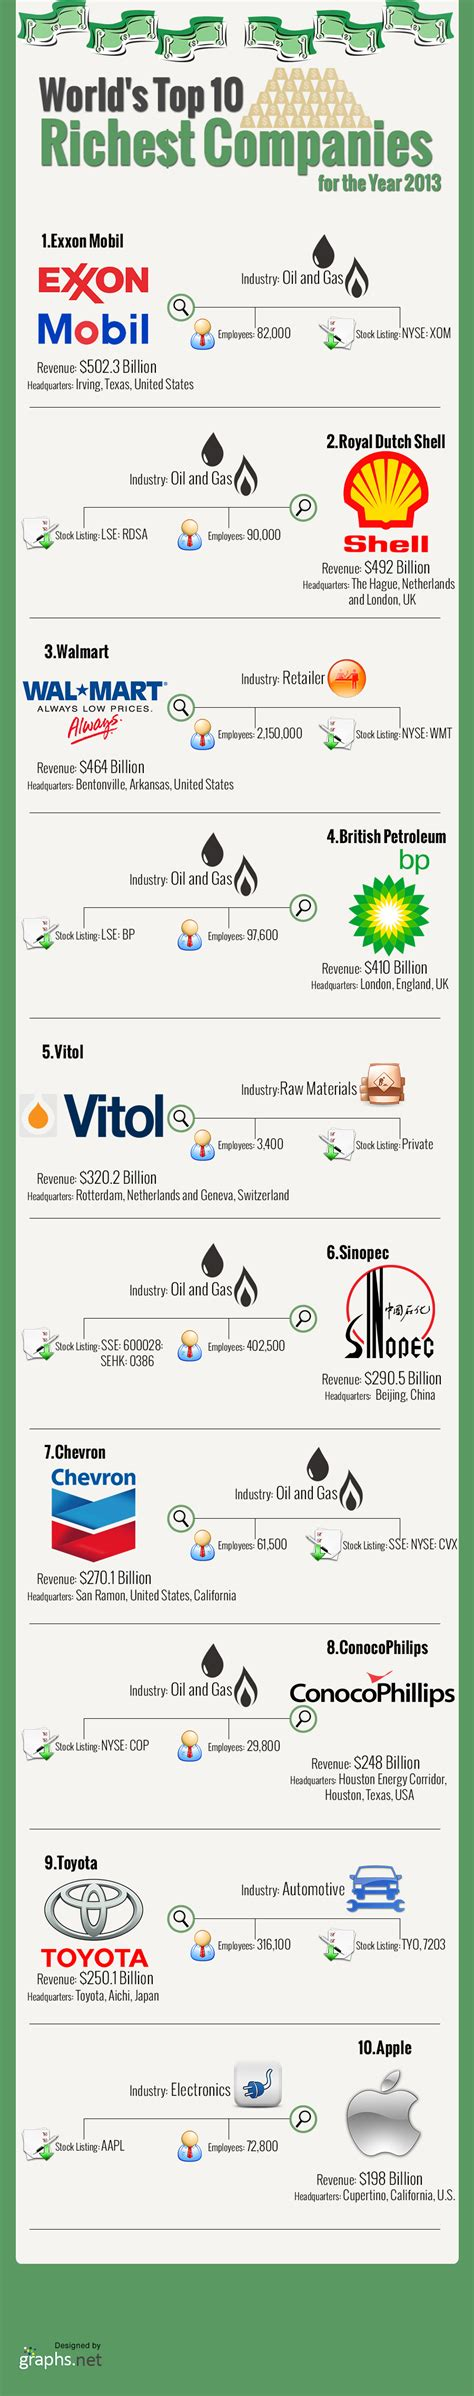 top 10 richest in the world 2013 dianneebue s world s top 10 richest companies for the year 2013 infographic infographics graphs net